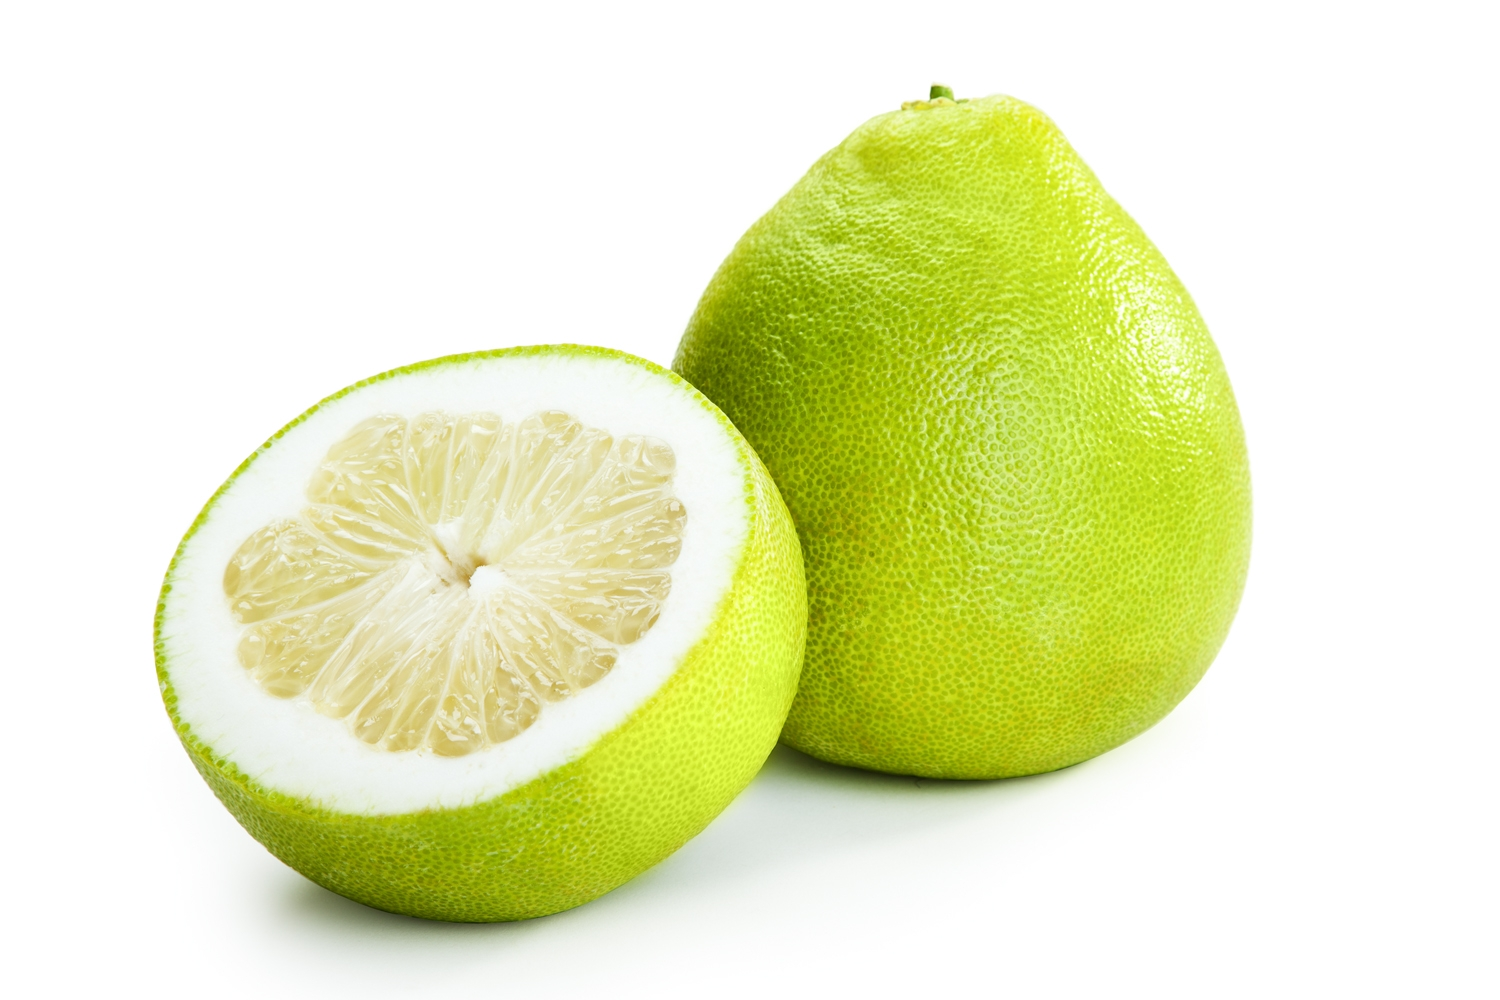 Thai Design Pomelo Facts And Health Benefits